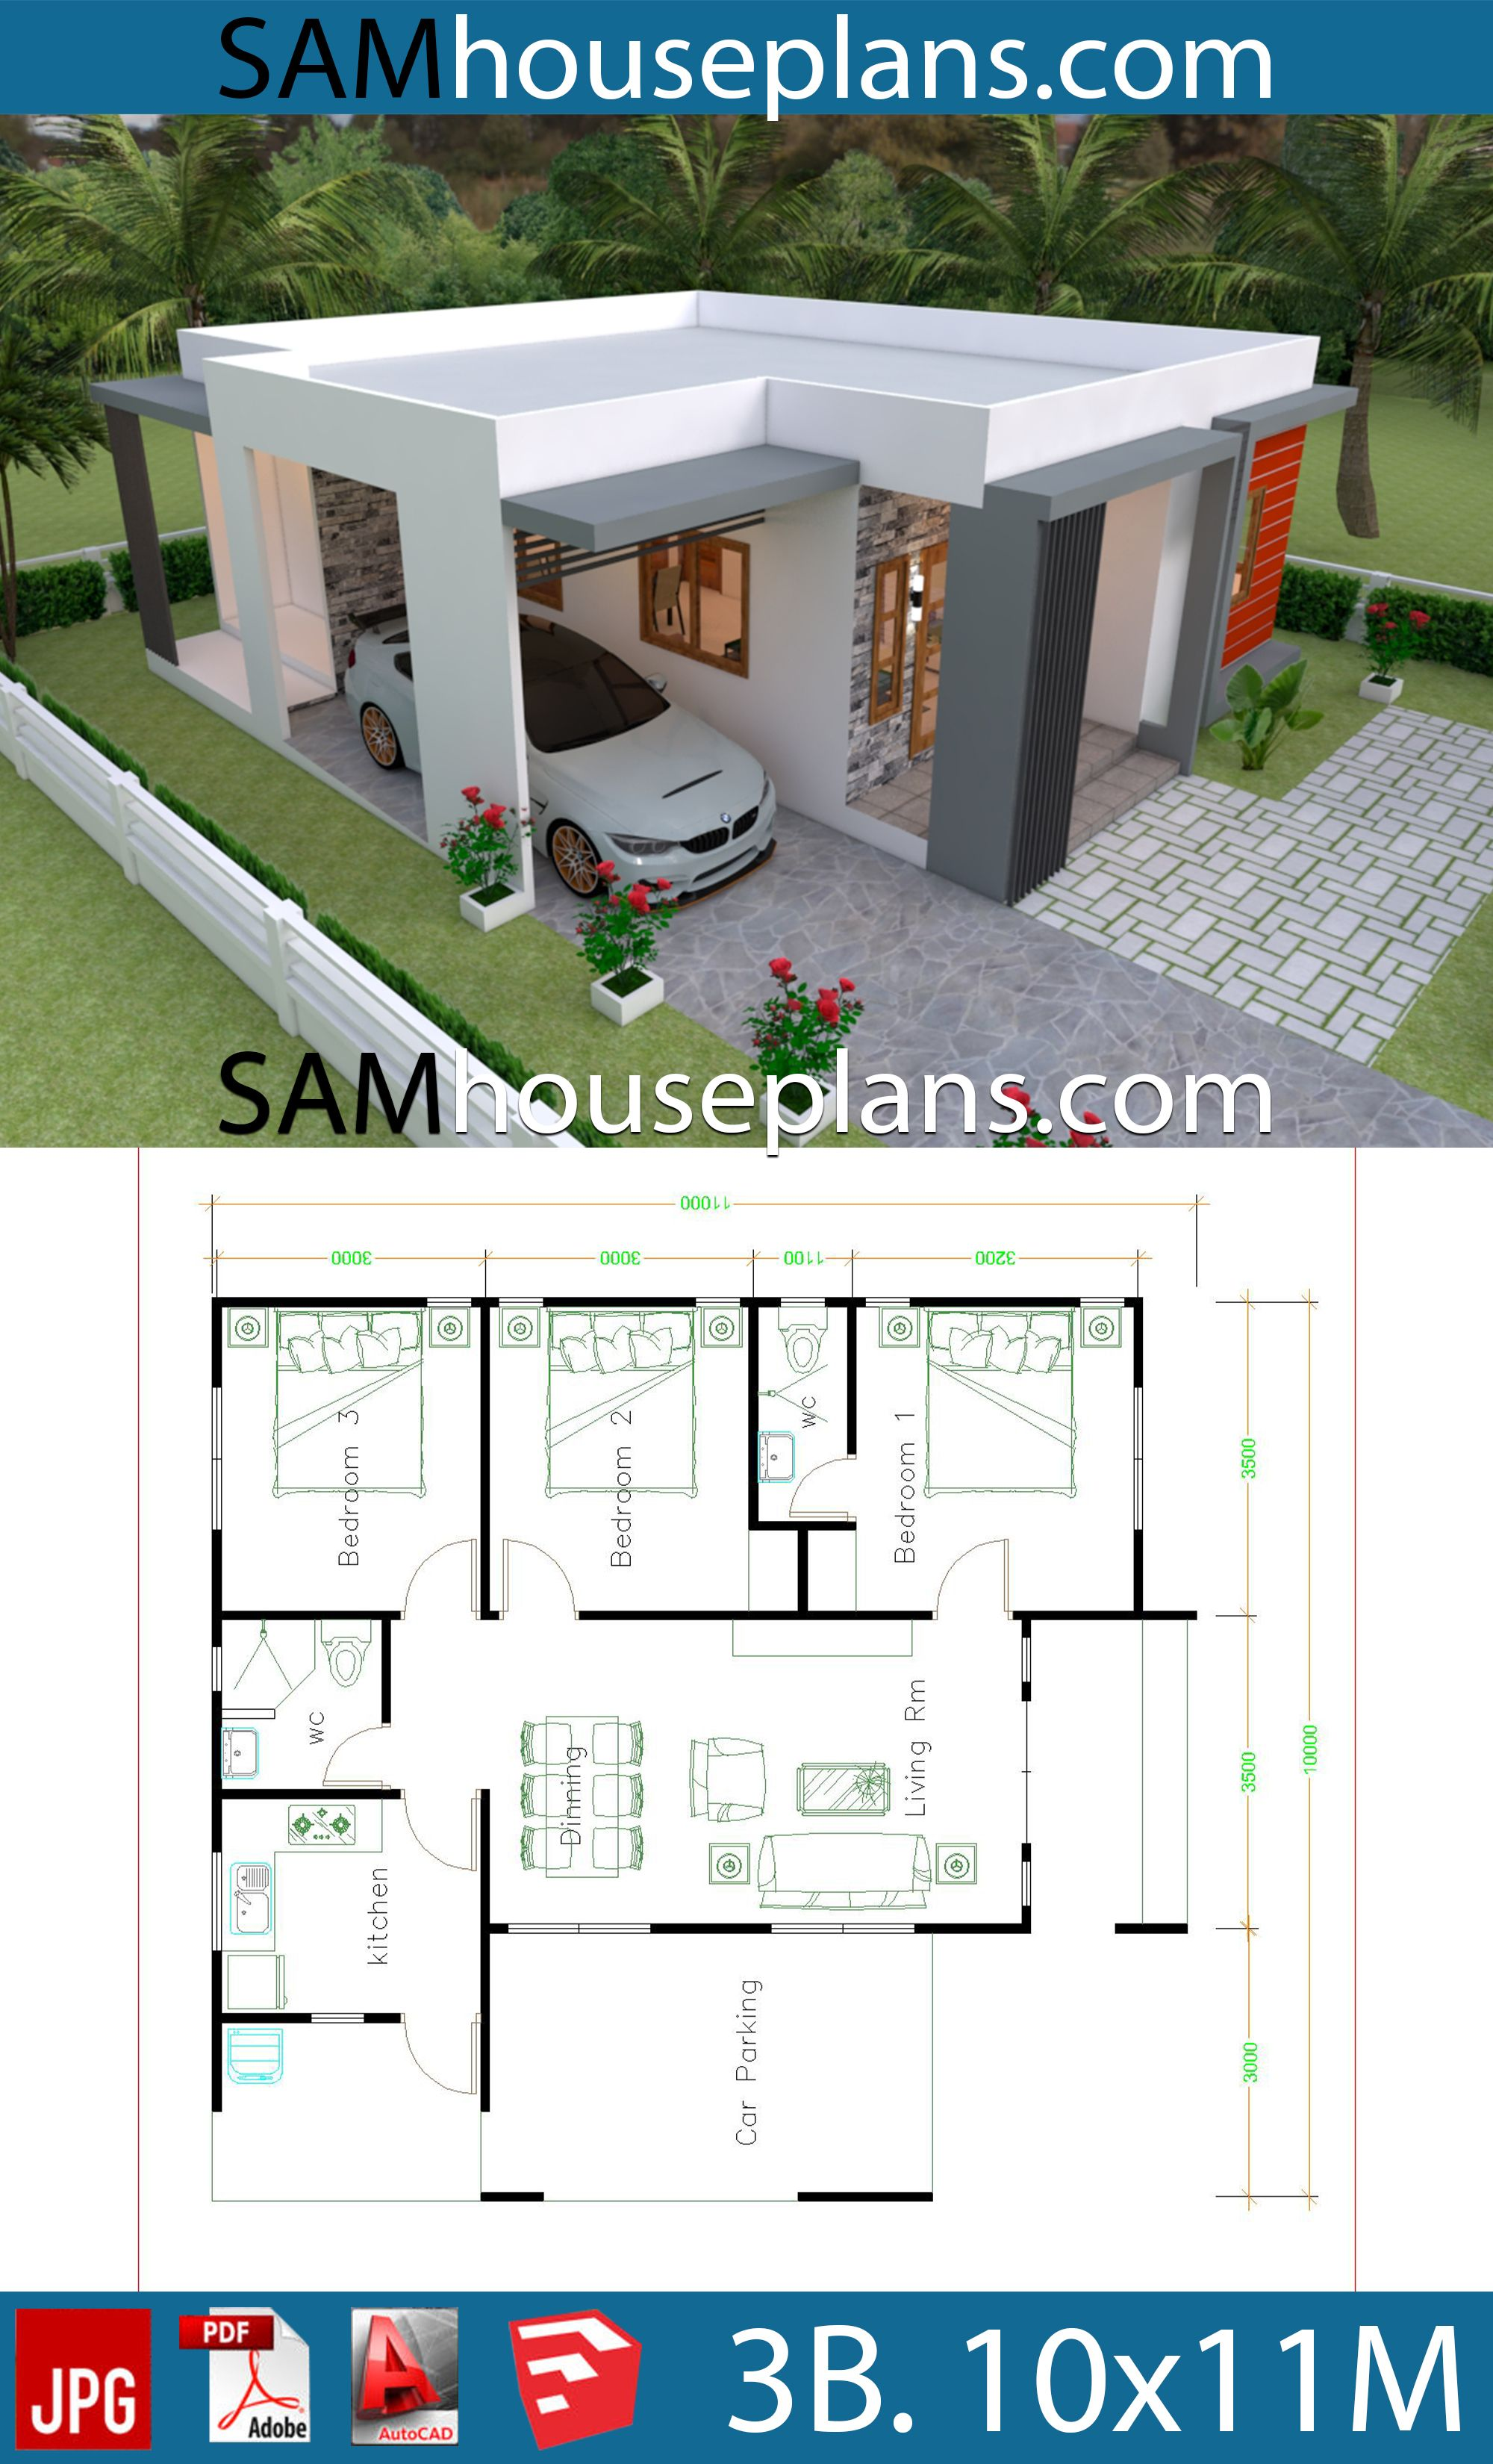 House Plans 10x11 With 3 Bedrooms House Plans Free Downloads My House Plans Beautiful House Plans Modern Bungalow House